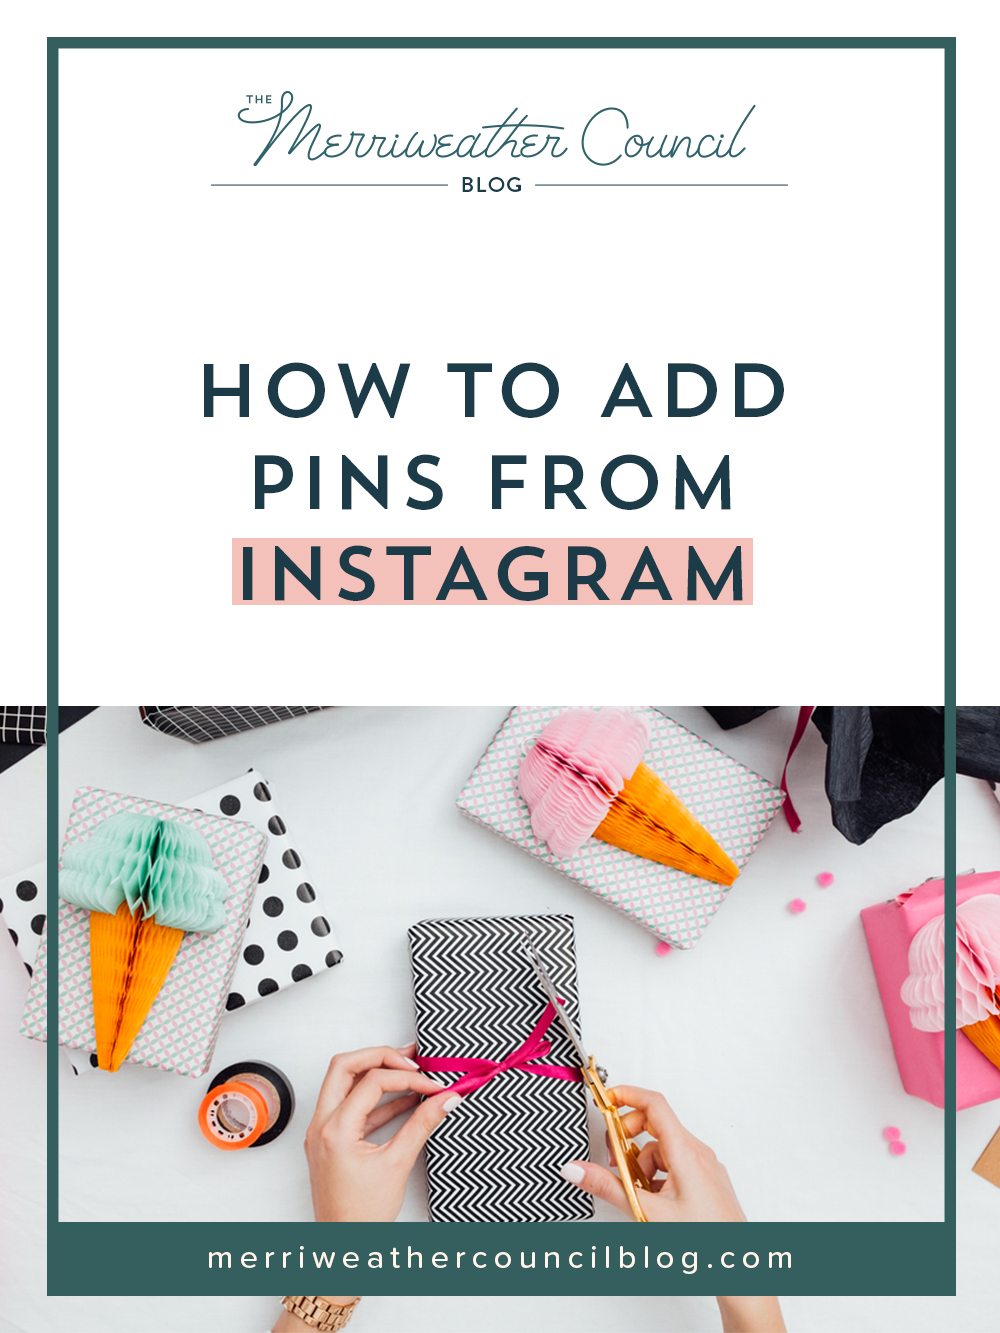 How to add pins from instagram themerriweather council blog ive seen a lot of folks asking about how to add pins from instagram out and about in the internet land so i figured why not go on an answer it for ccuart Images